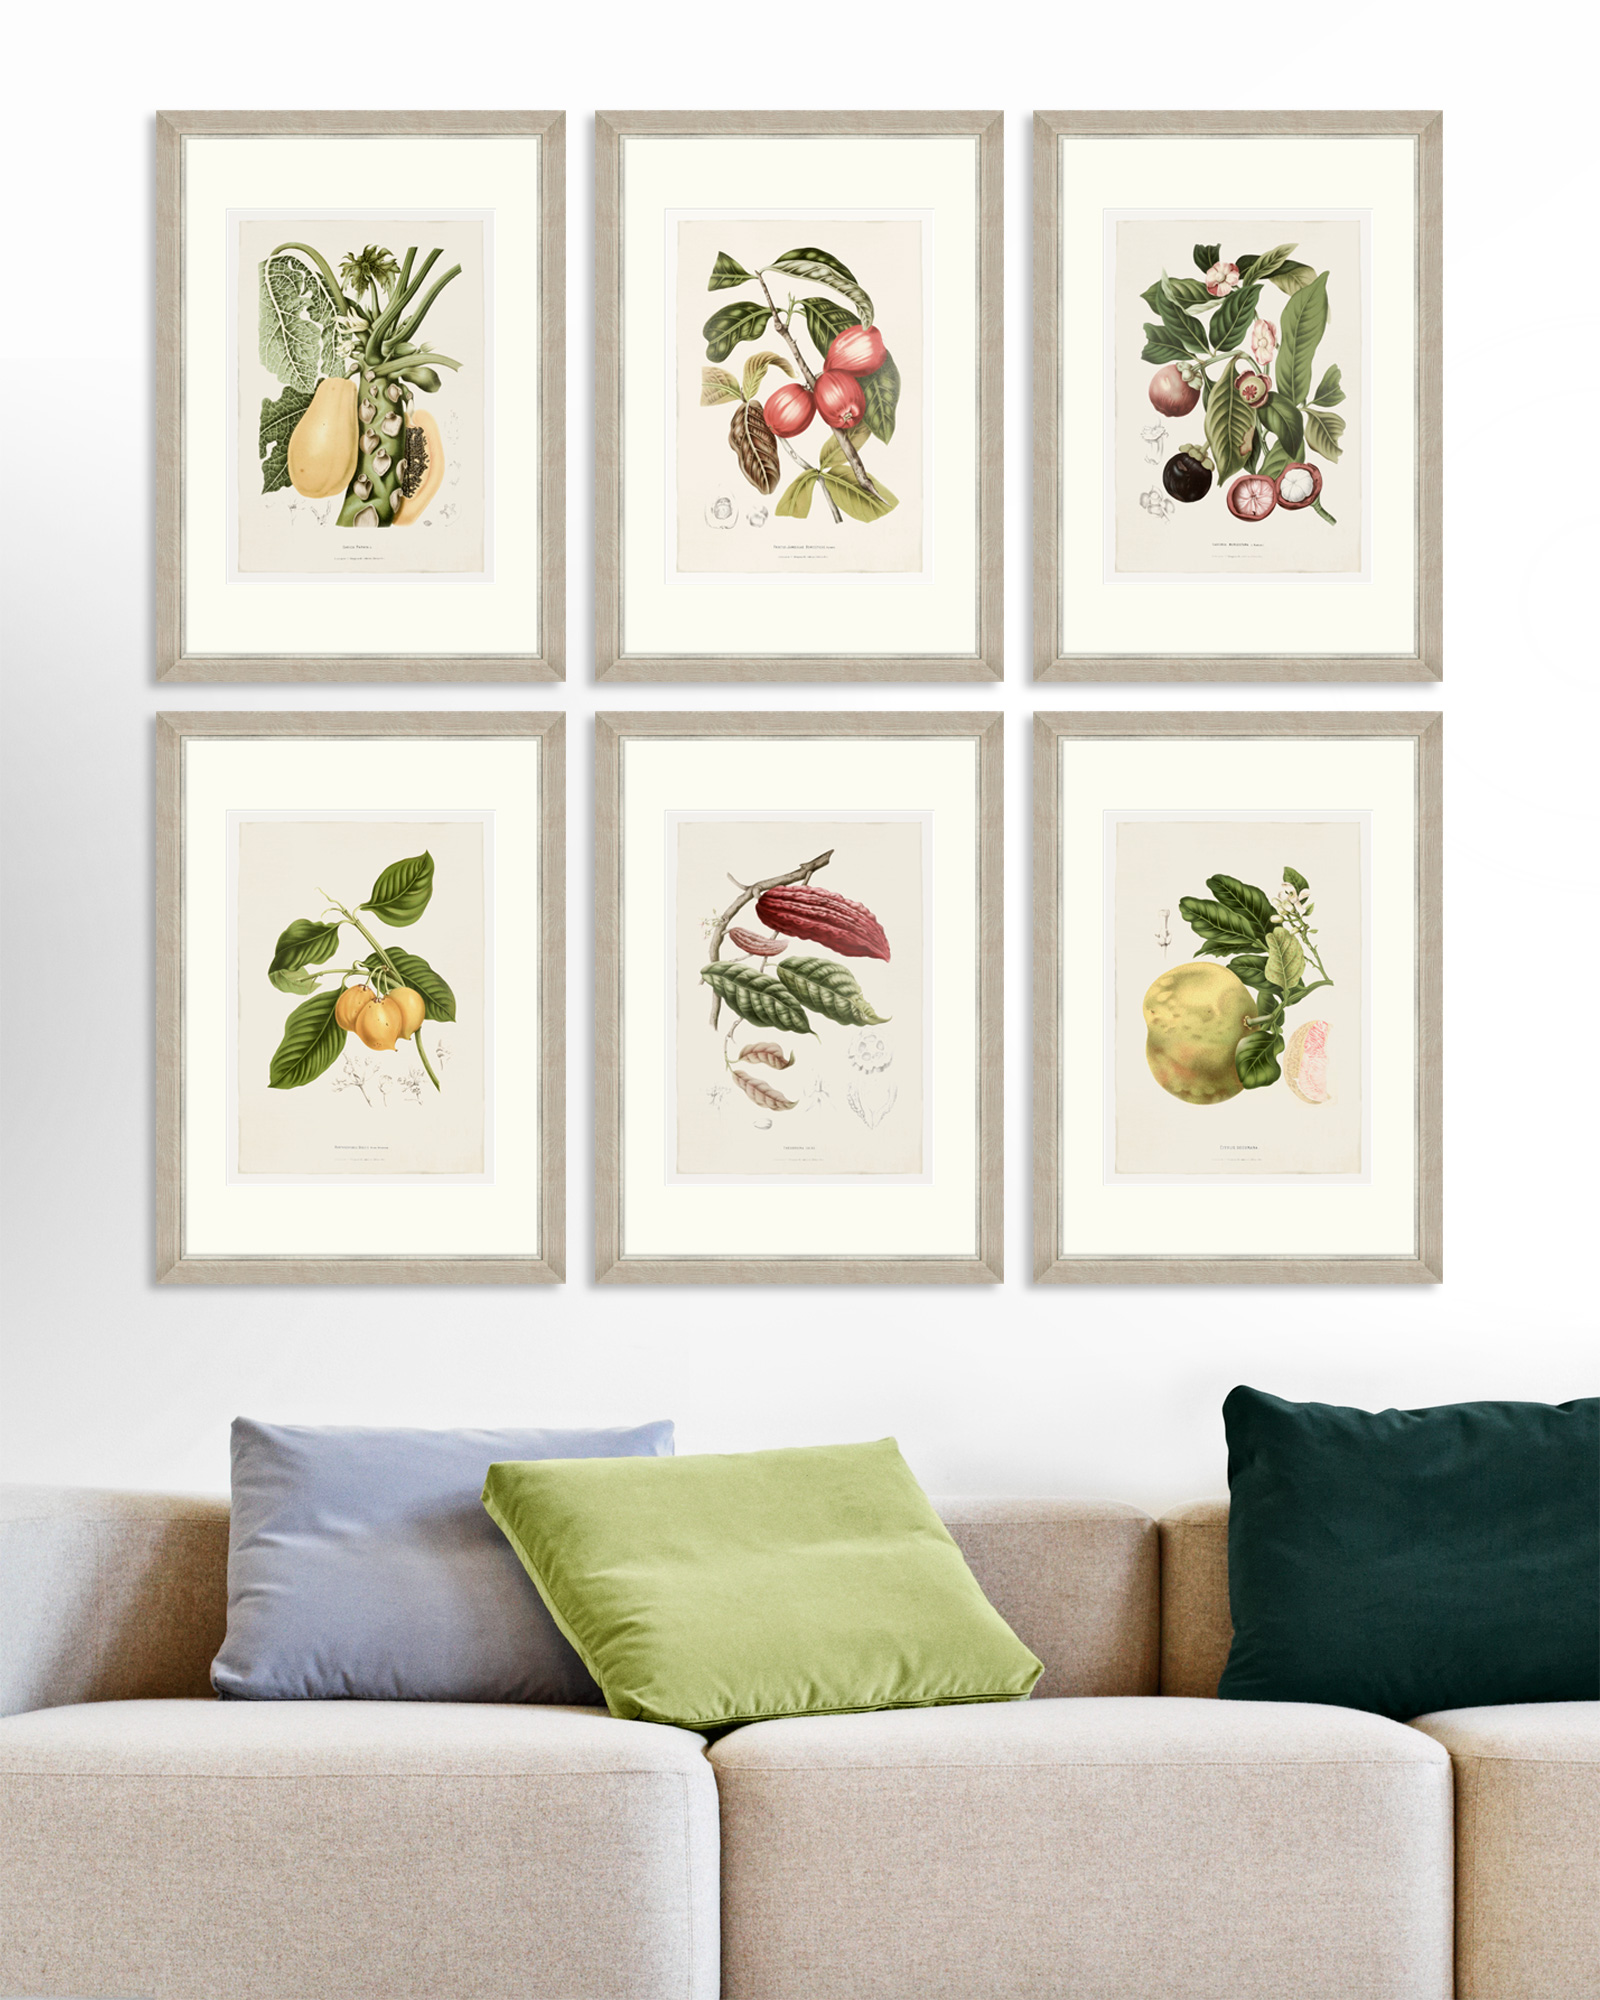 Tablou 6 piese Framed Art Vintage Fruit Plates imagine